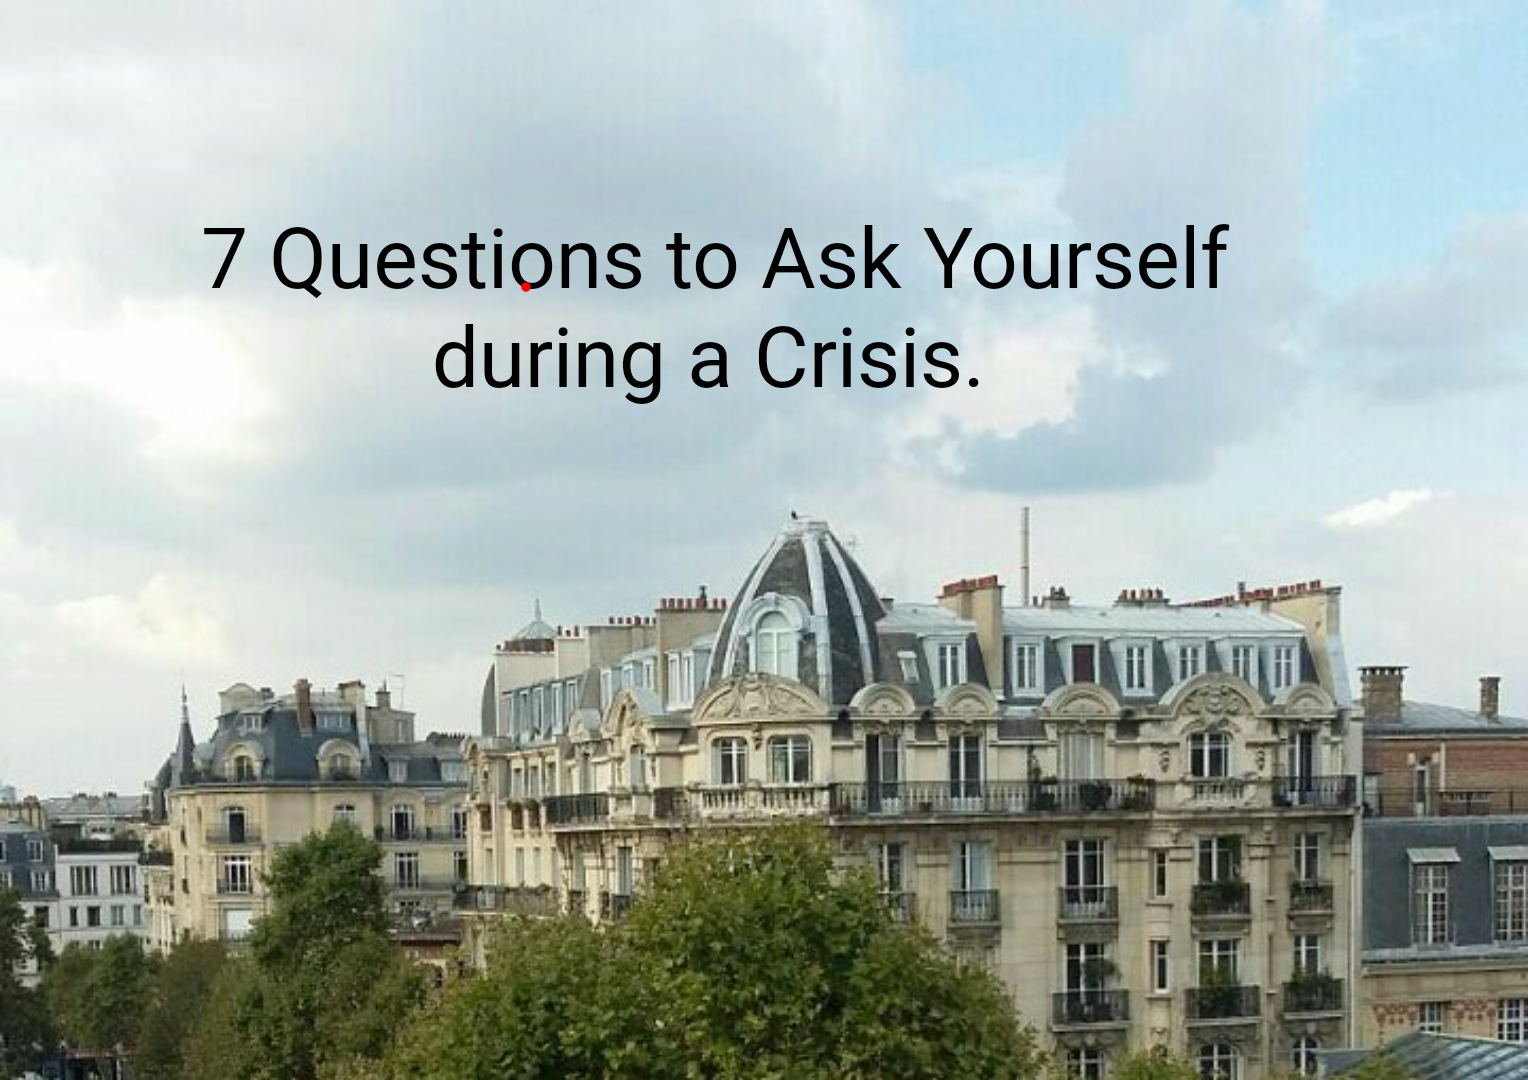 #Wisdomkeys: 7 Questions To Ask Yourself During A Crisis By @drMikeMurdock